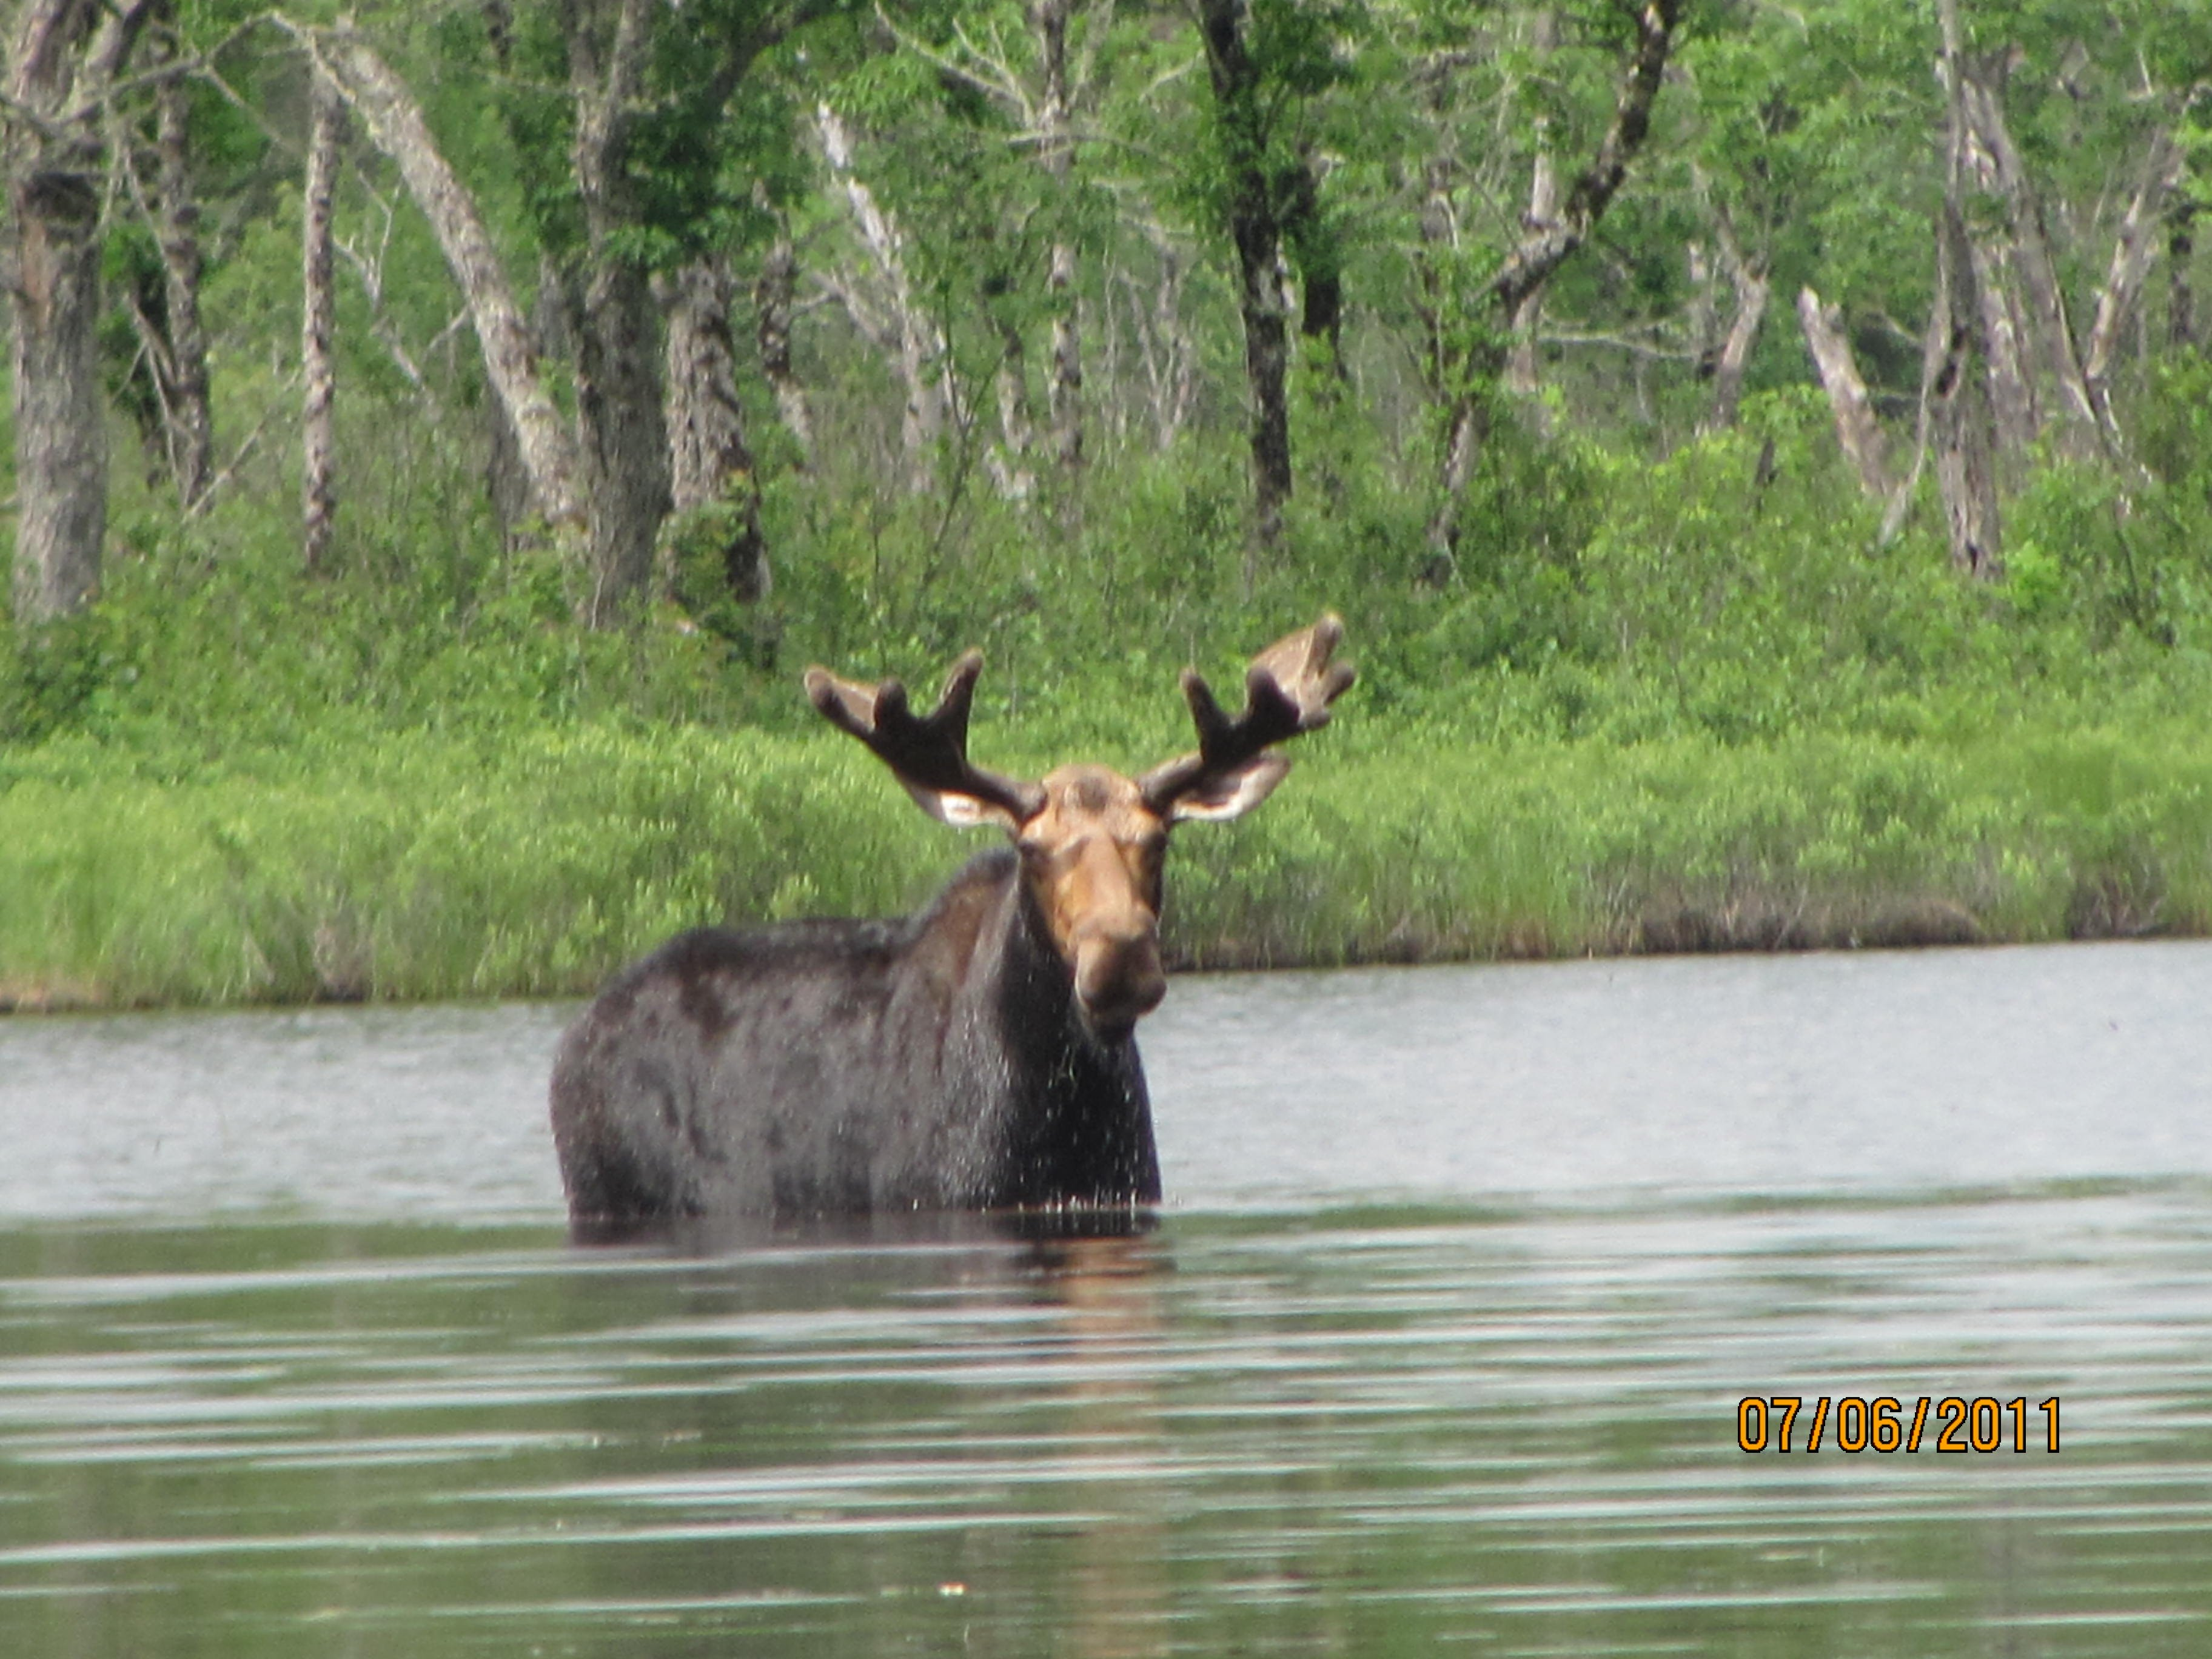 If you're lucky, you might get to see a Maine moose on your trip.